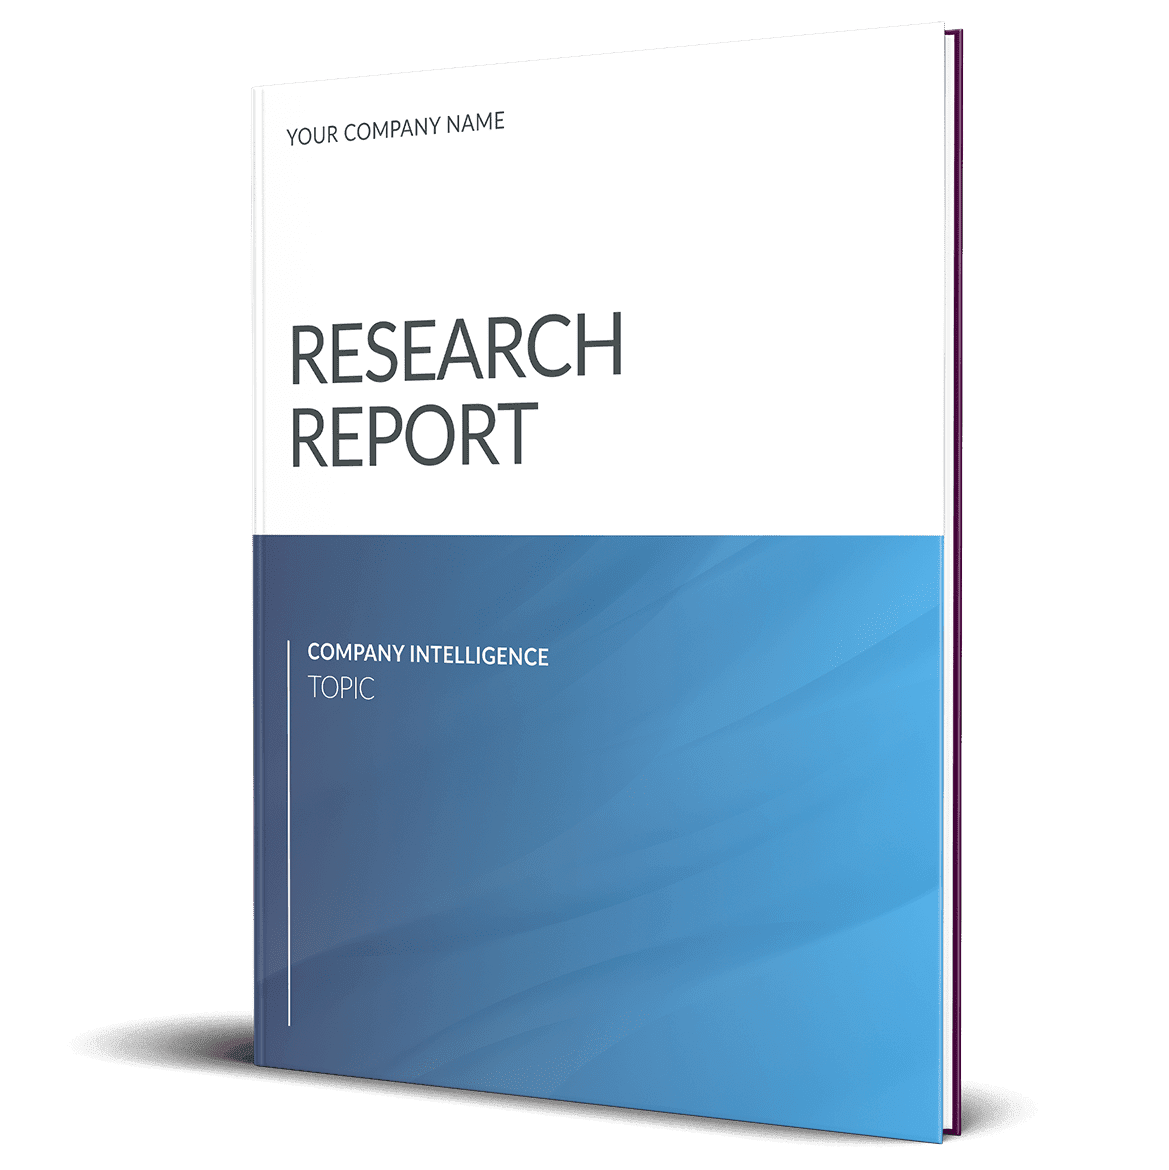 Customized Research Report